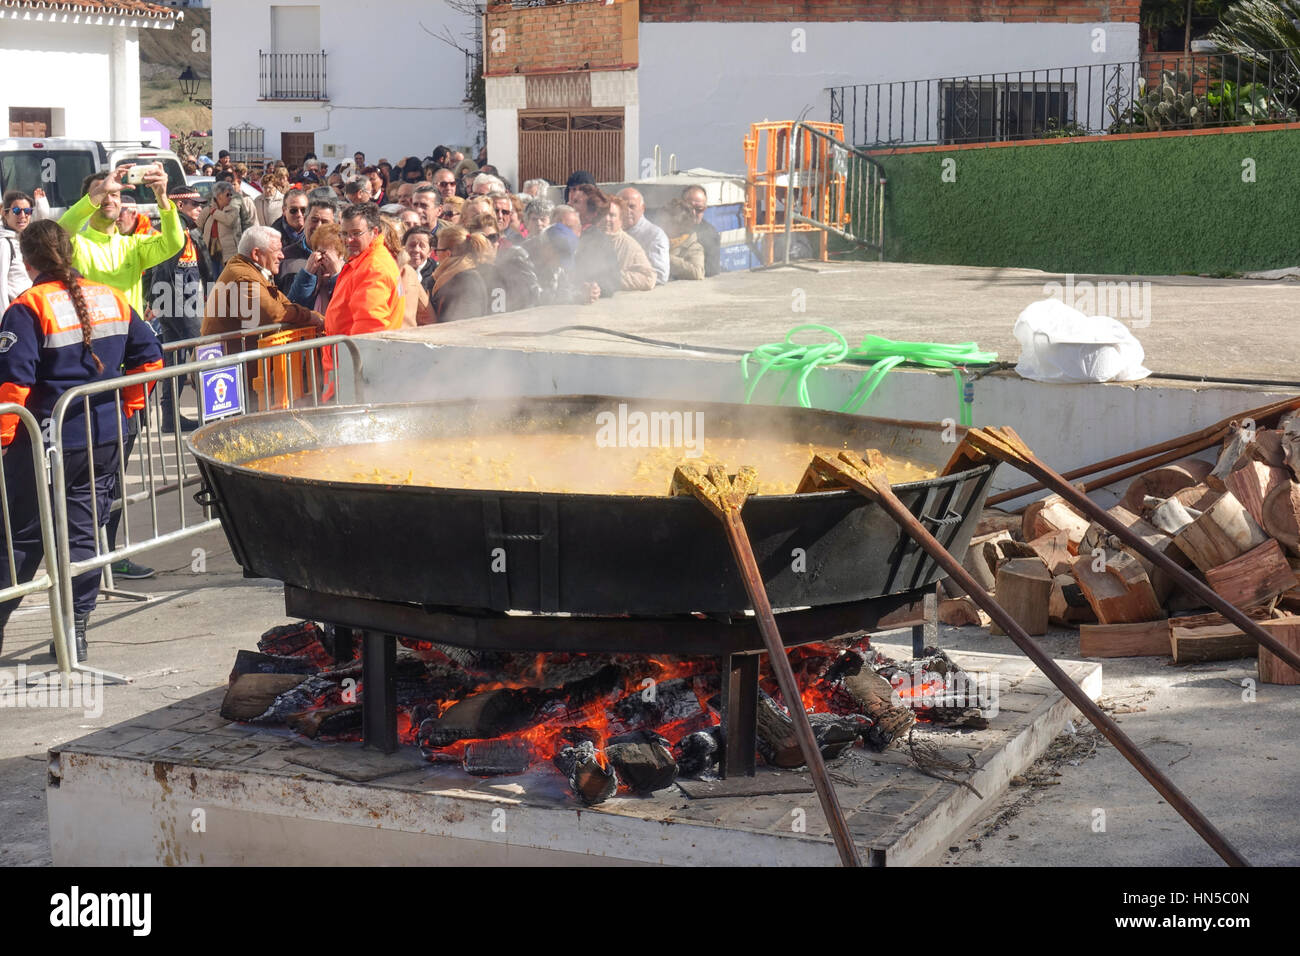 Huge pan with stew cooking on open fire at Fiesta de matanza, Annual Celebrations in Ardales.Andalusia, Spain. Stock Photo